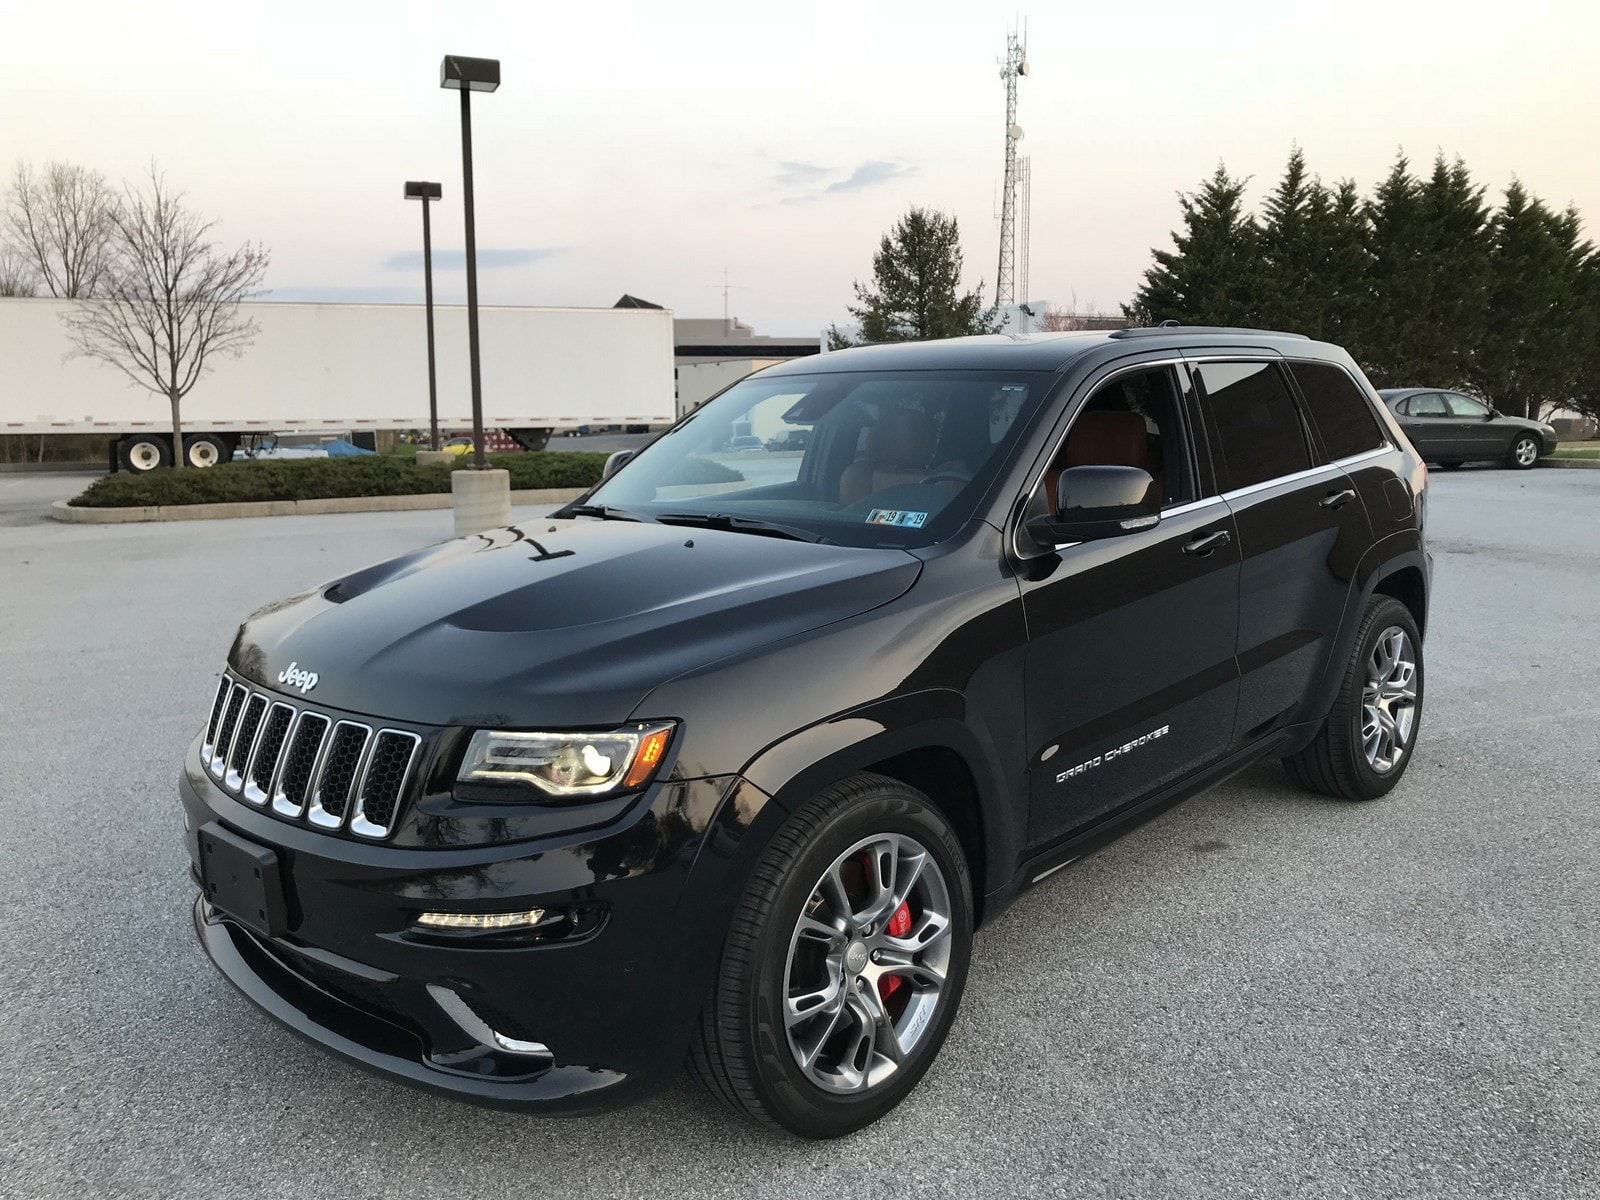 ... 2014 Jeep Grand Cherokee SRT With RIPP SUPERCHARGER 225HP UPGRADE KIT  SUV ...